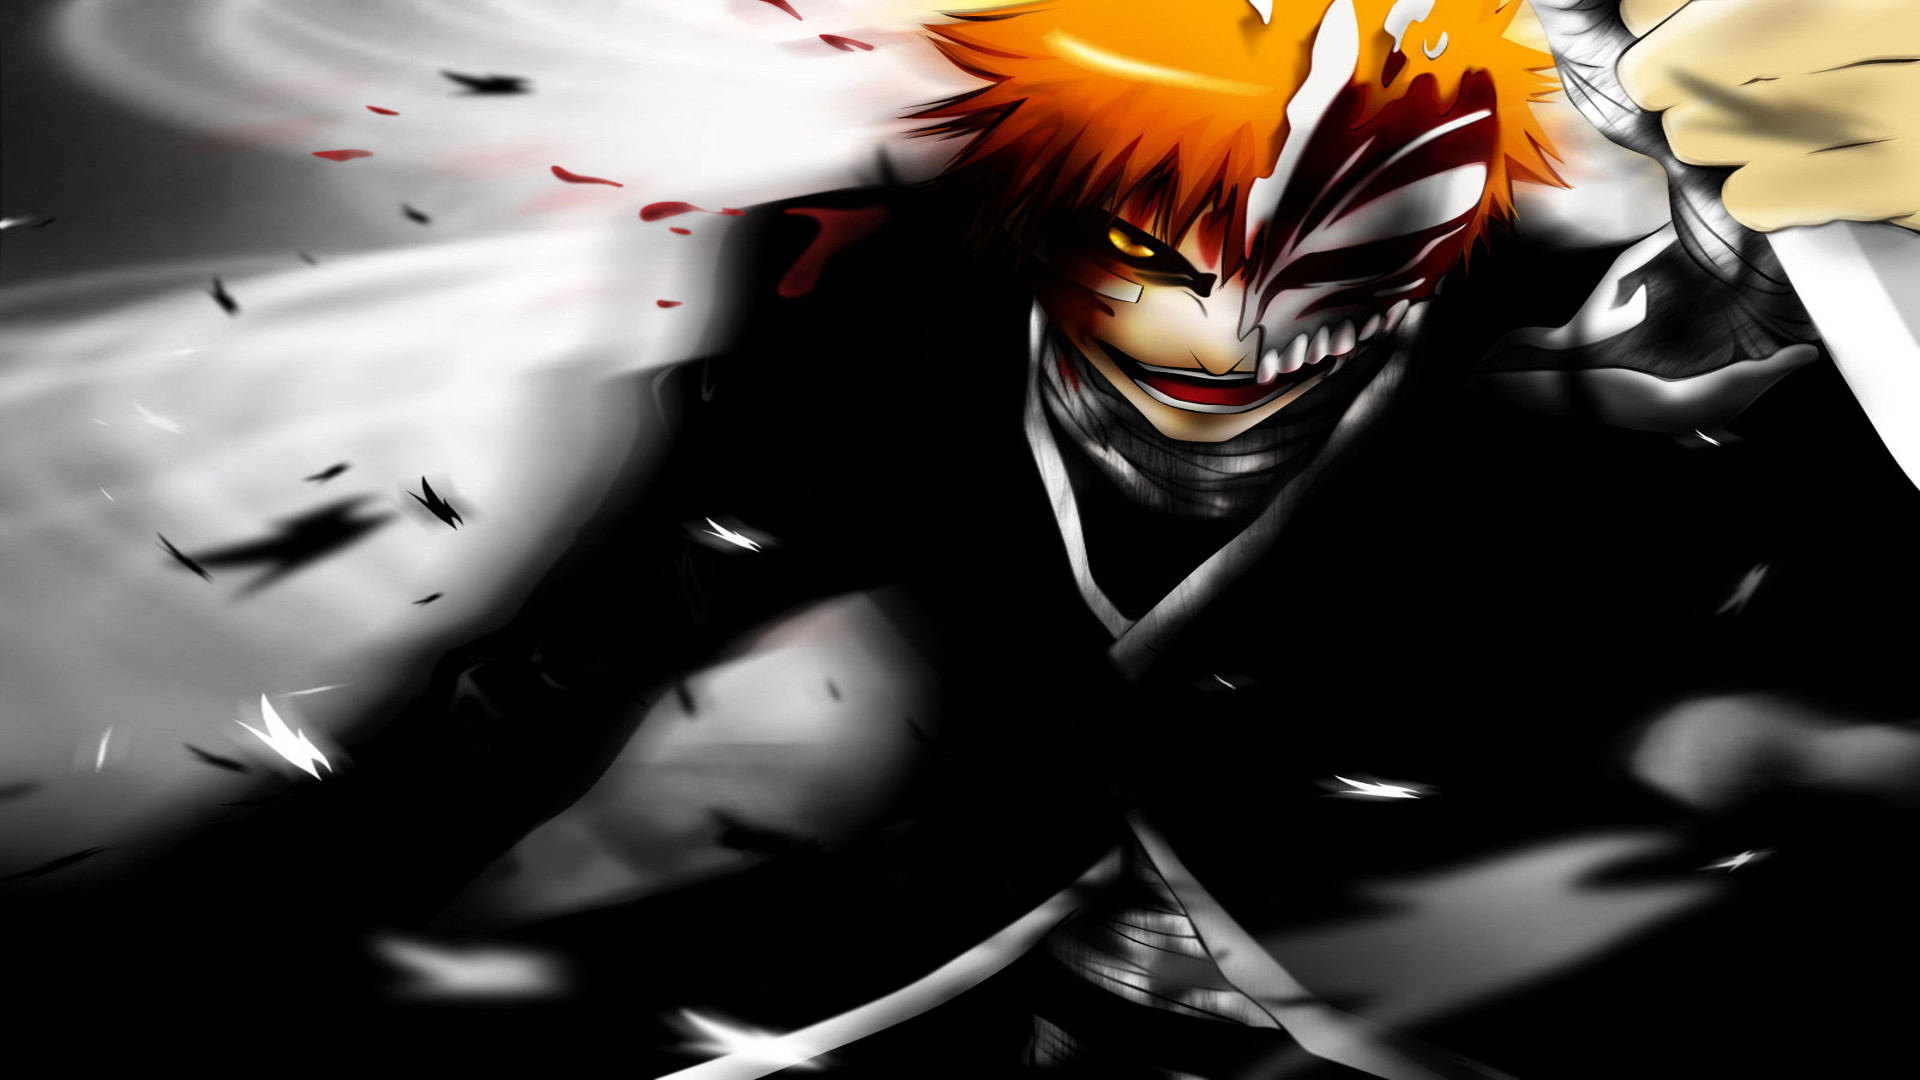 Bleach Wallpapers 1920x1080 82 Background Pictures